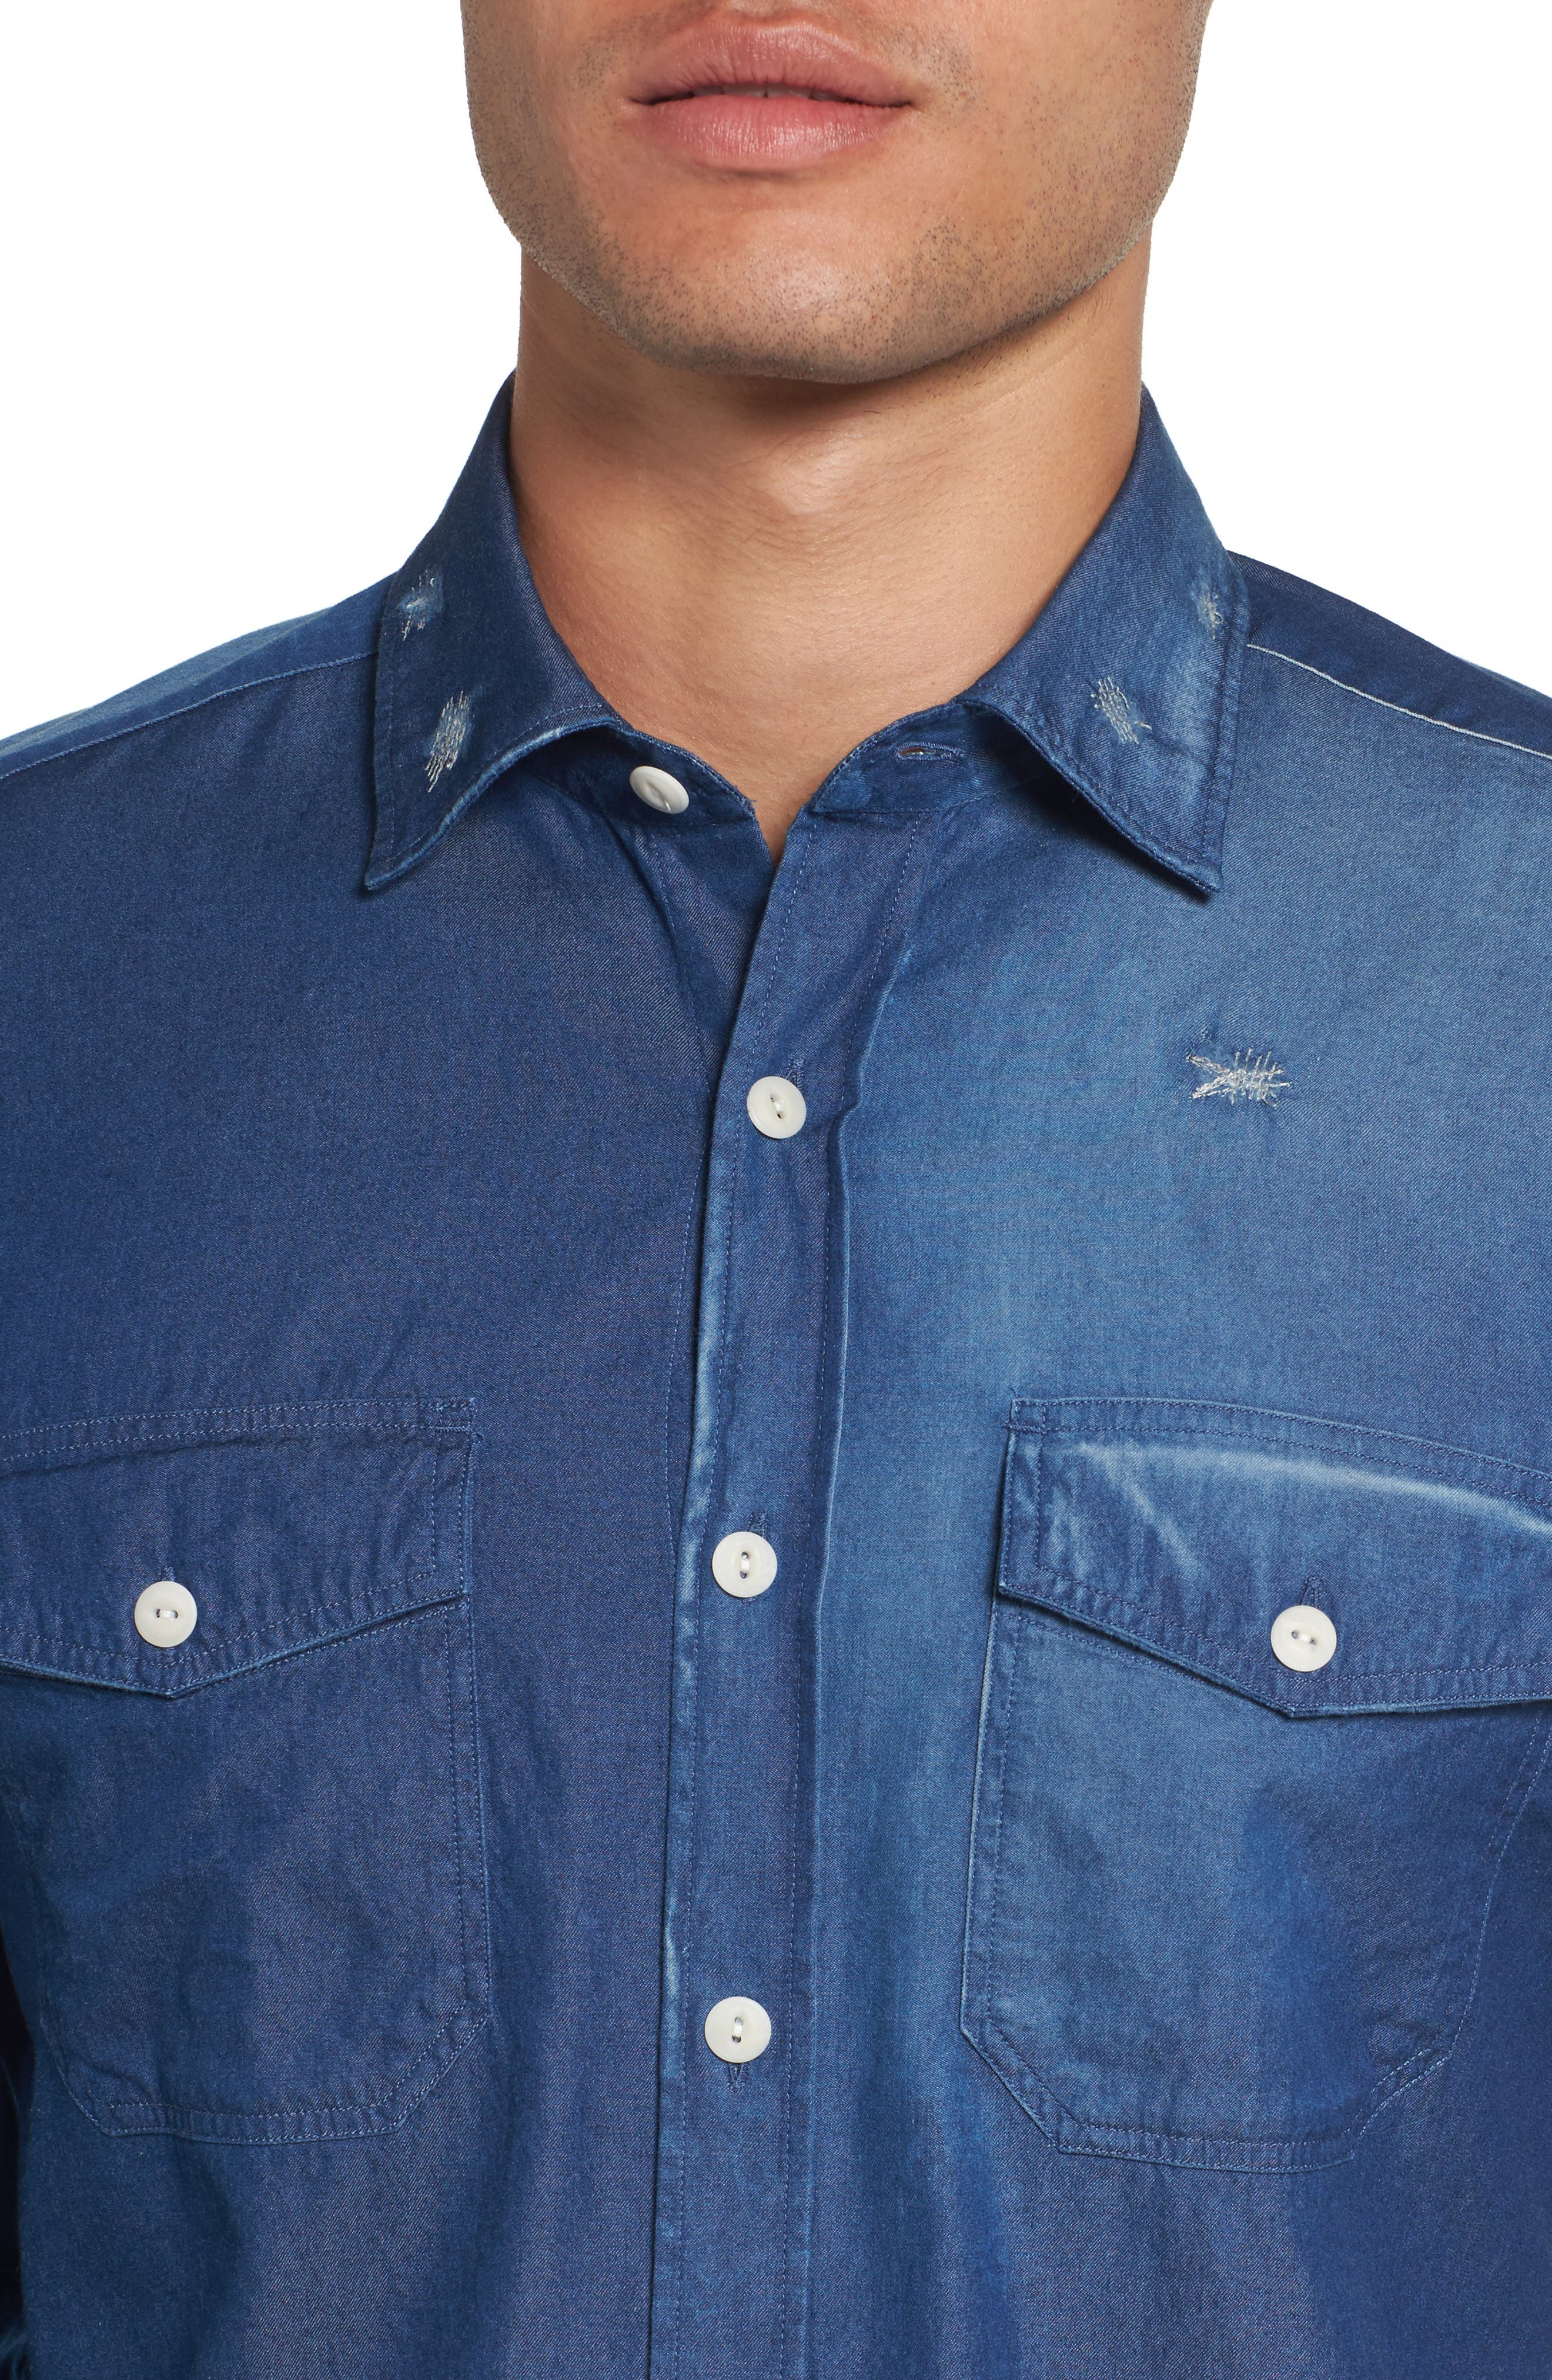 Italian Fade Wash Sport Shirt,                             Alternate thumbnail 4, color,                             400